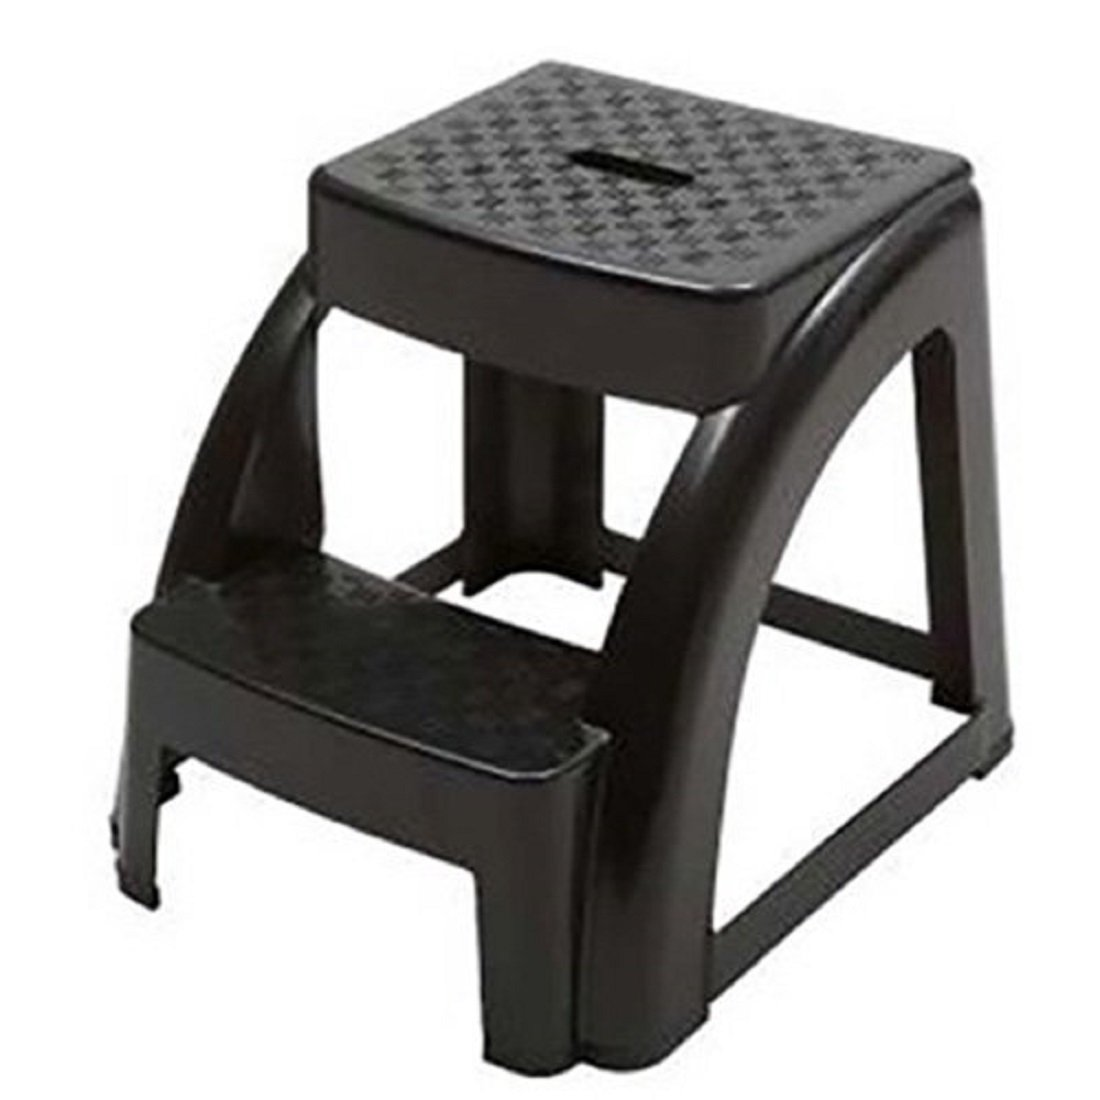 NTM 2-STEP ANTI-SLIP BLACK STEP STOOL - 250 LB. LOAD CAPACITY - 18'' L x 16'' W x 15'' H